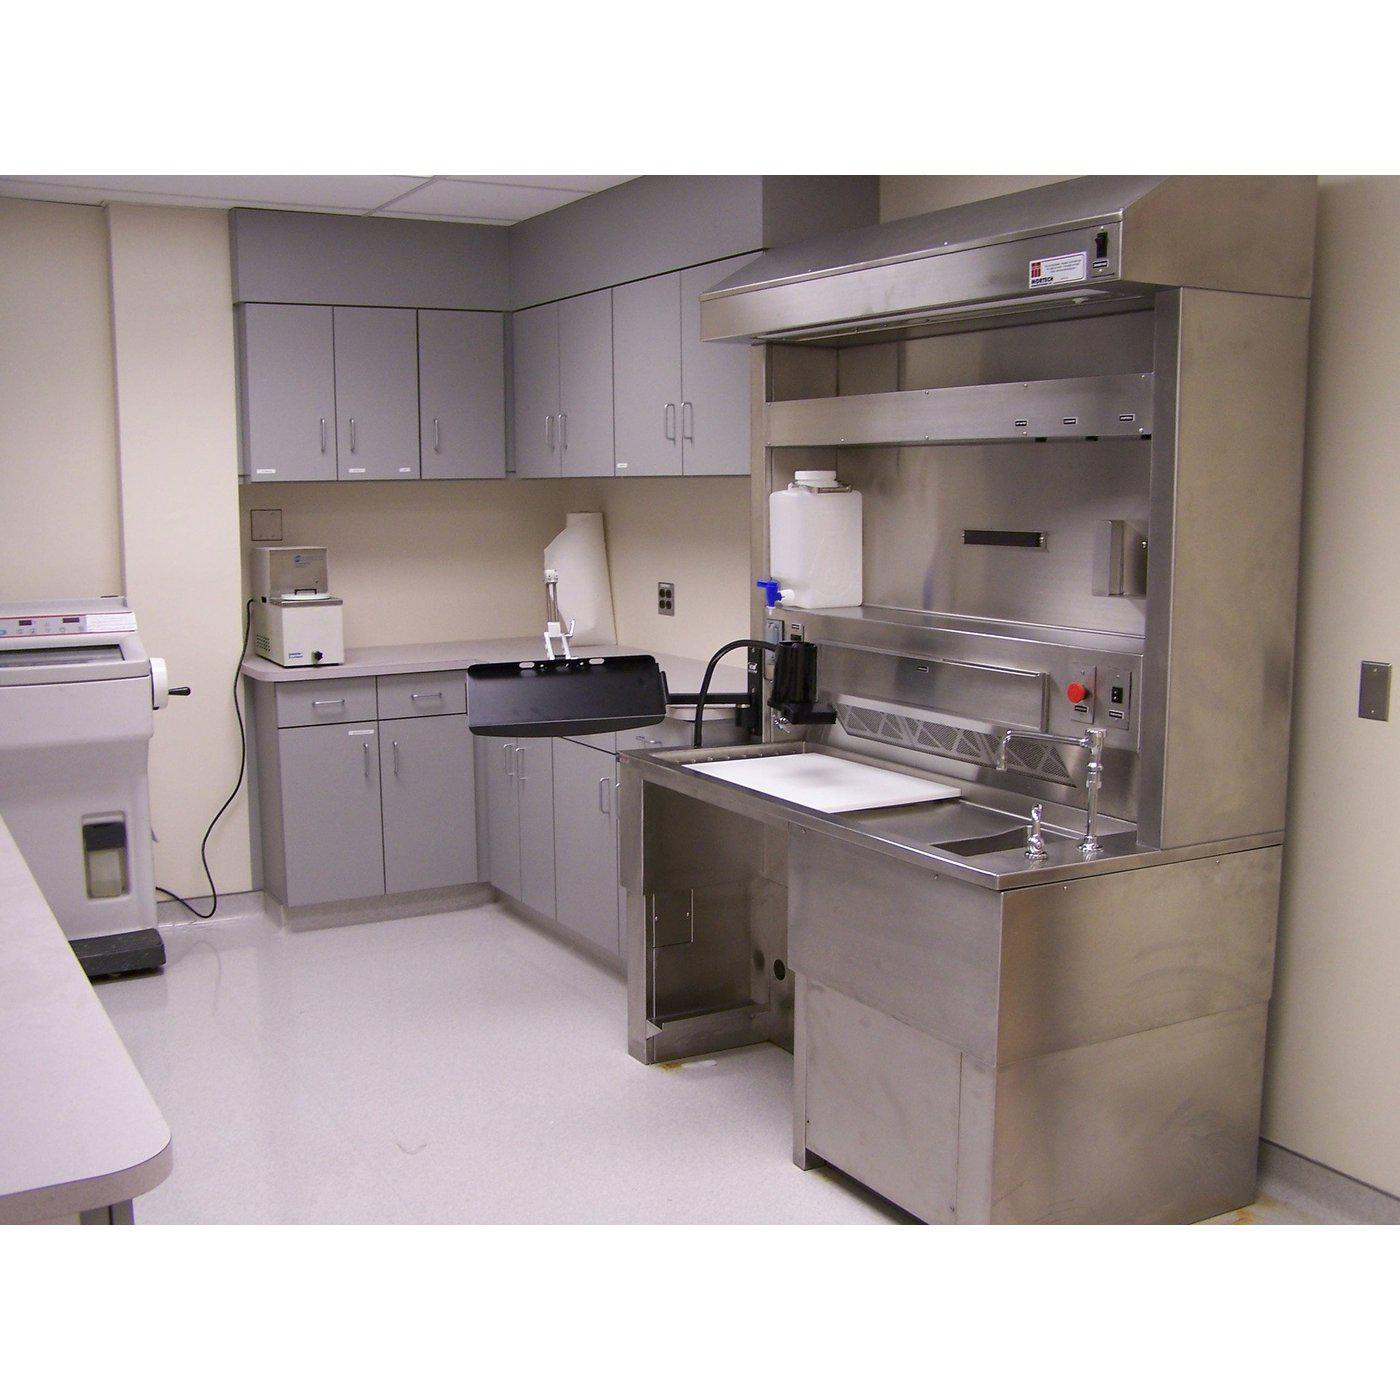 Elevating Pathology Workstation with Backdraft Ventilation-Pathology Grossing Stations-Mortech Manufacturing Company Inc. Quality Stainless Steel Autopsy, Morgue, Funeral Home, Necropsy, Veterinary / Anatomy, Dissection Equipment and Accessories